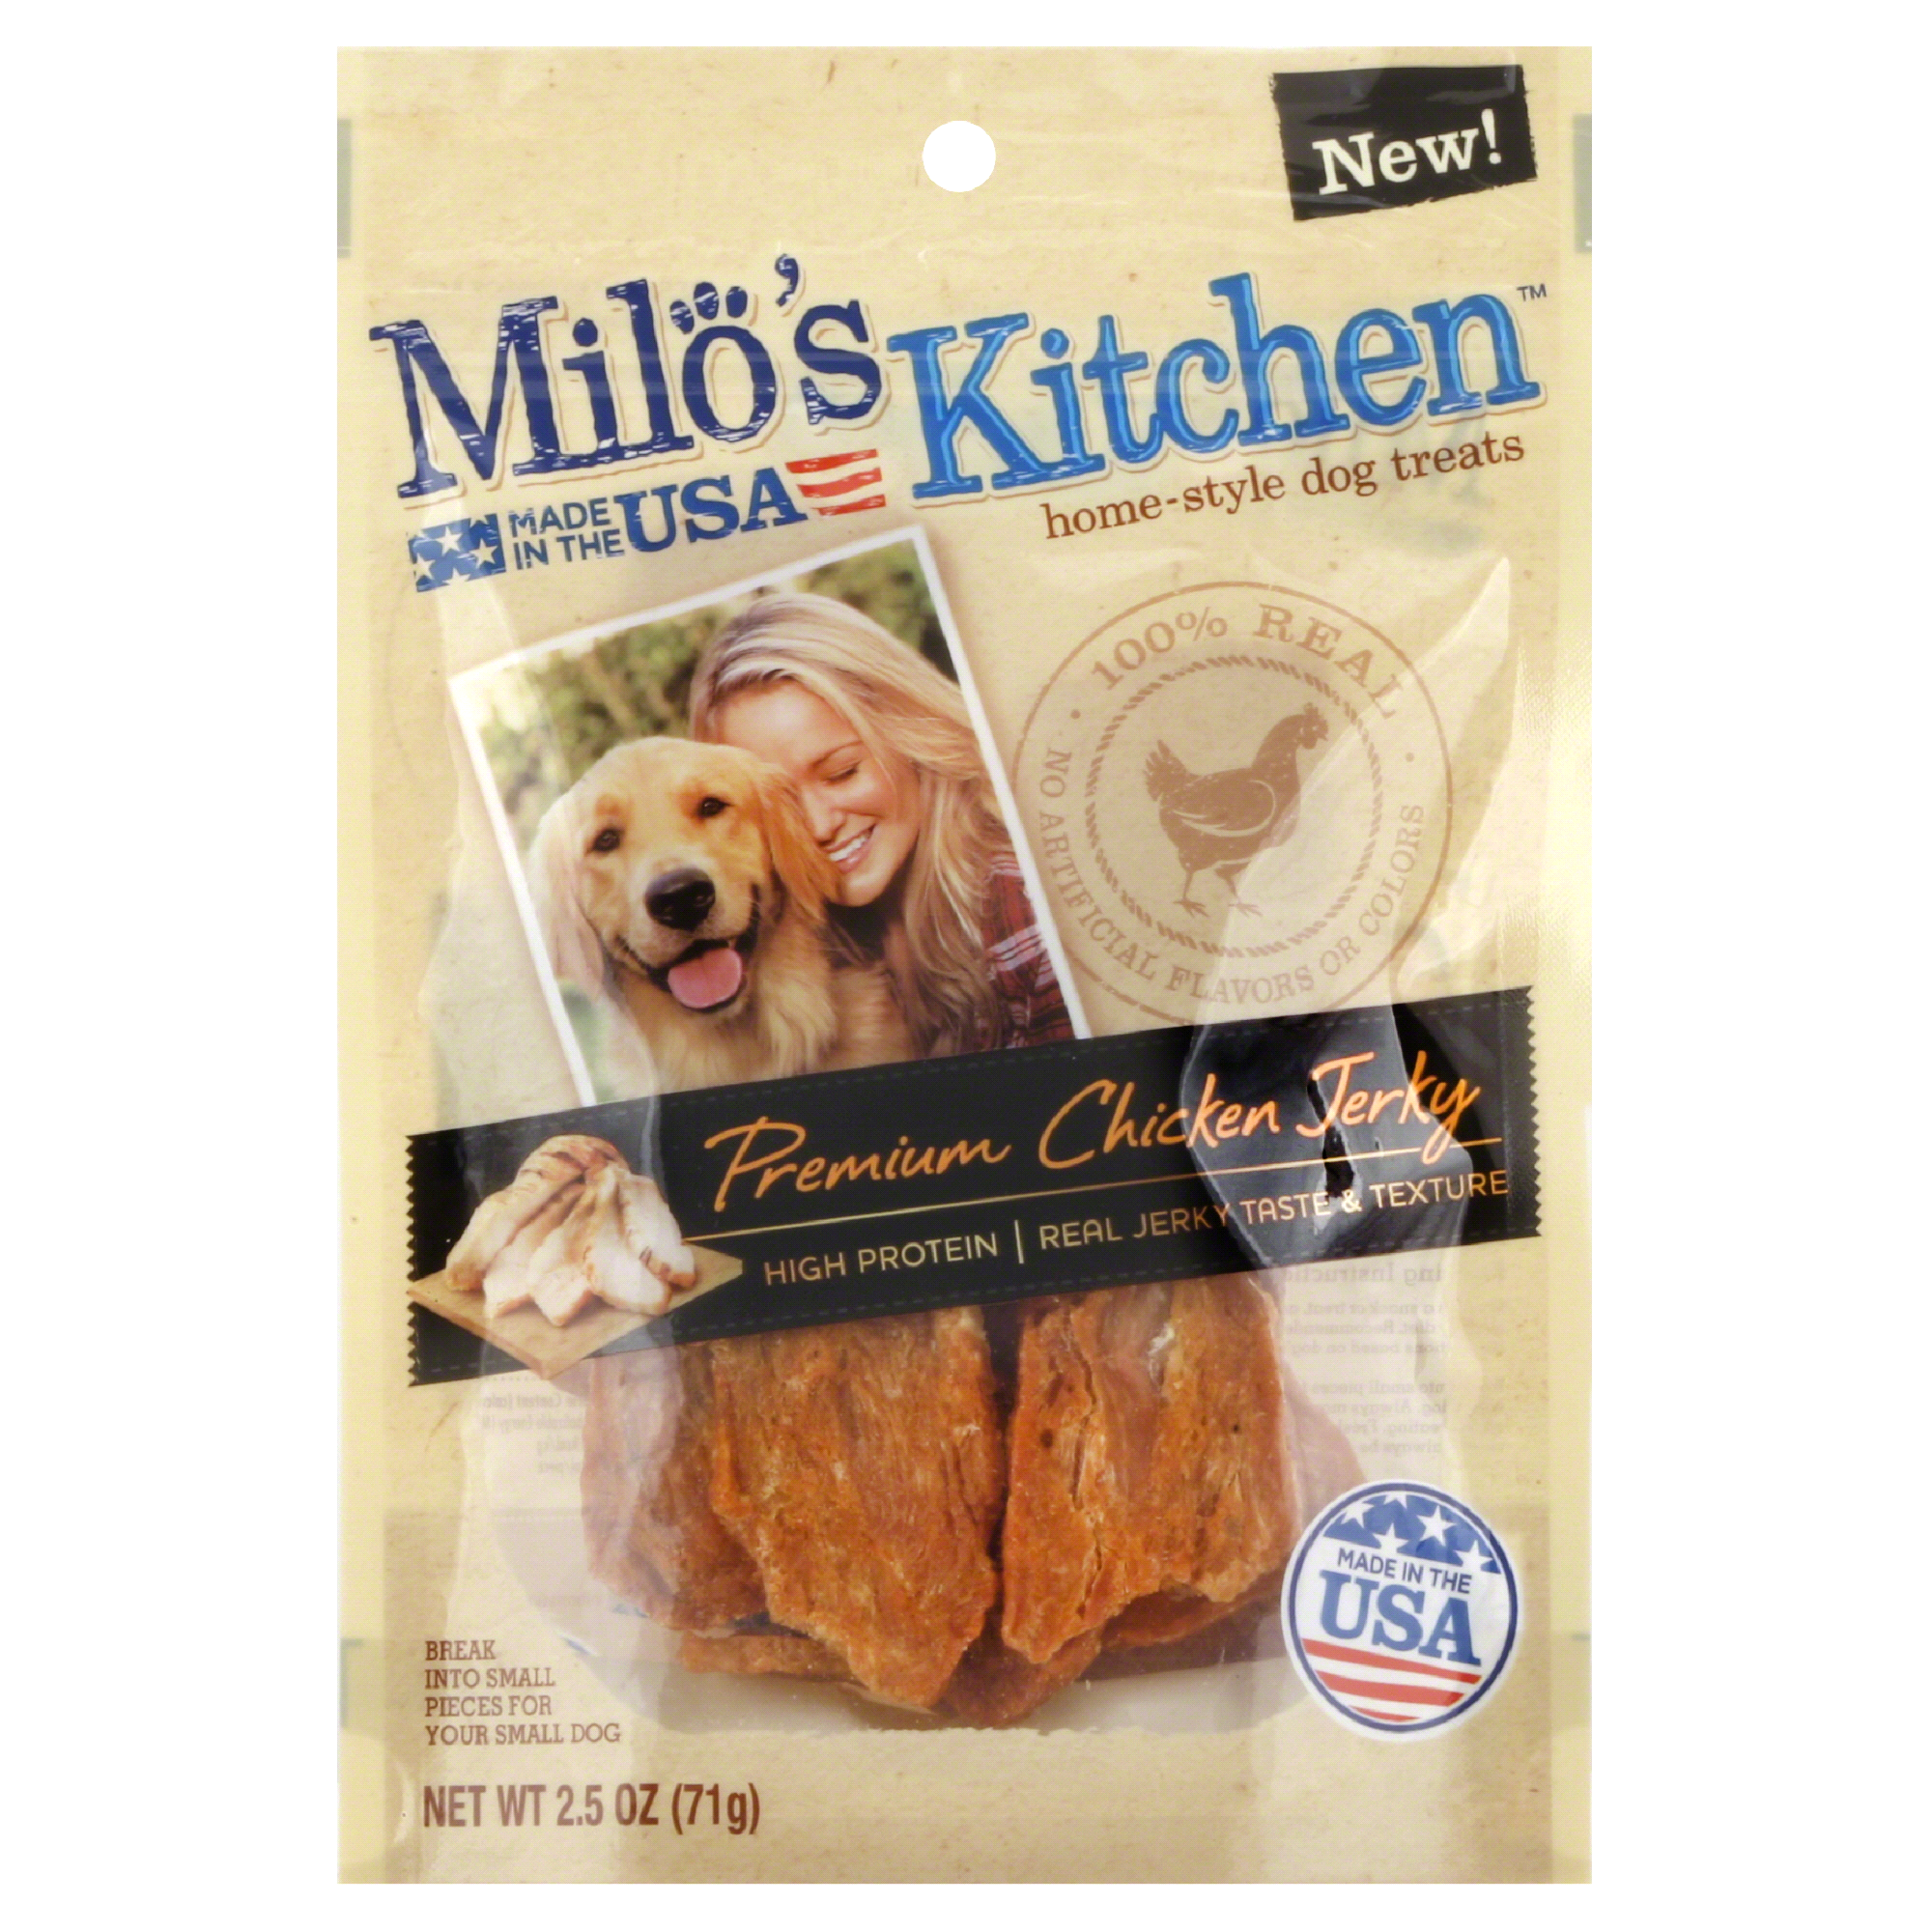 Milos Kitchen Homestyle Dog Treats Chicken Jerky 2.5oz | Meijer.com